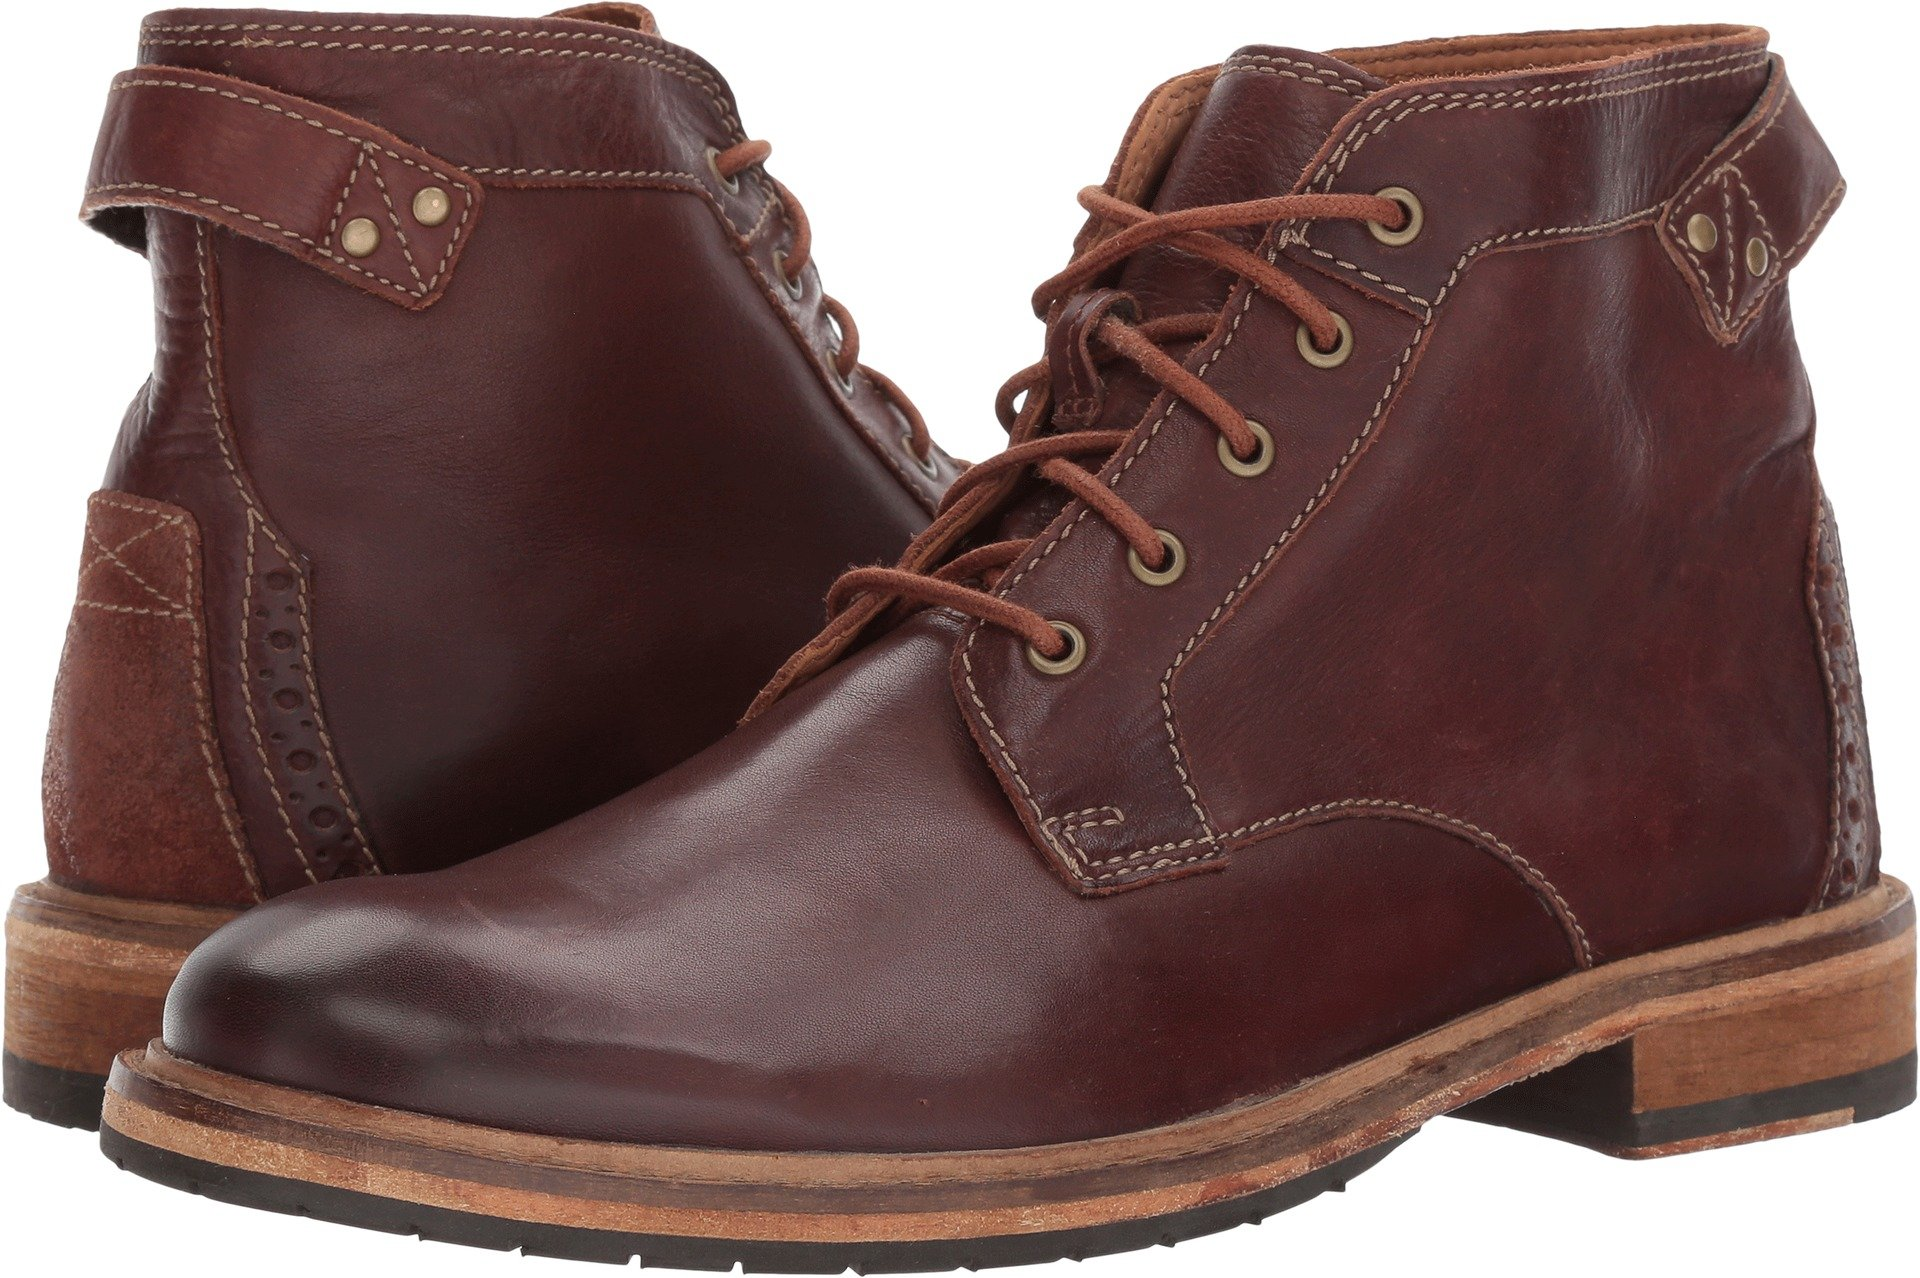 Clarks Mens Clarkdale Bud Mahogany Leather Boot - 11.5